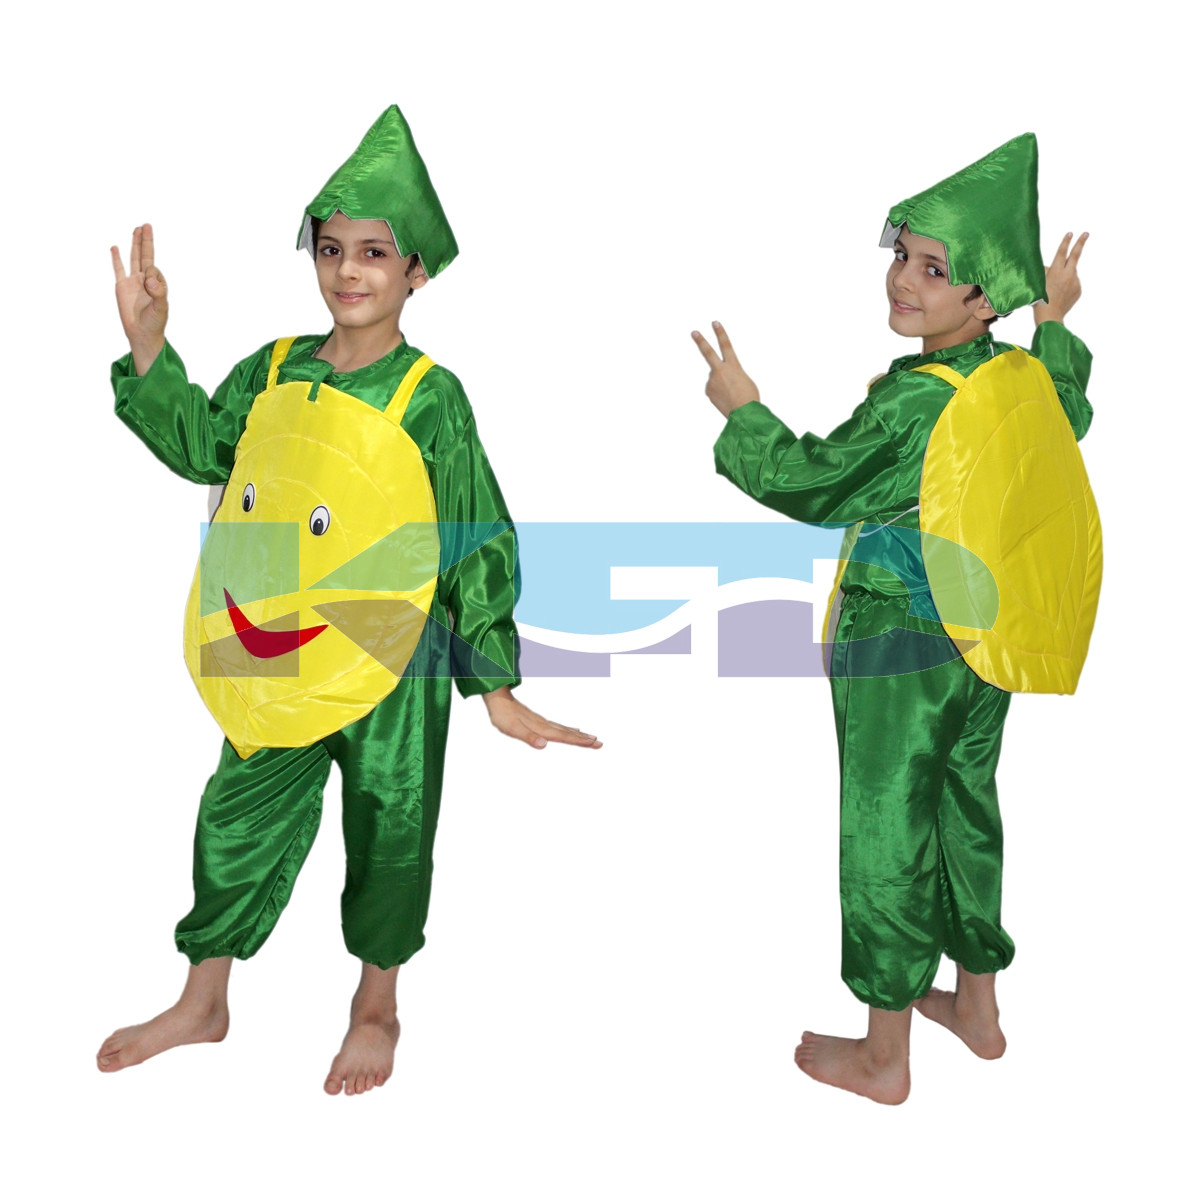 Lemon fancy dress for kids,Vegetable Costume for School Annual function/Theme Party/Competition/Stage Shows Dress